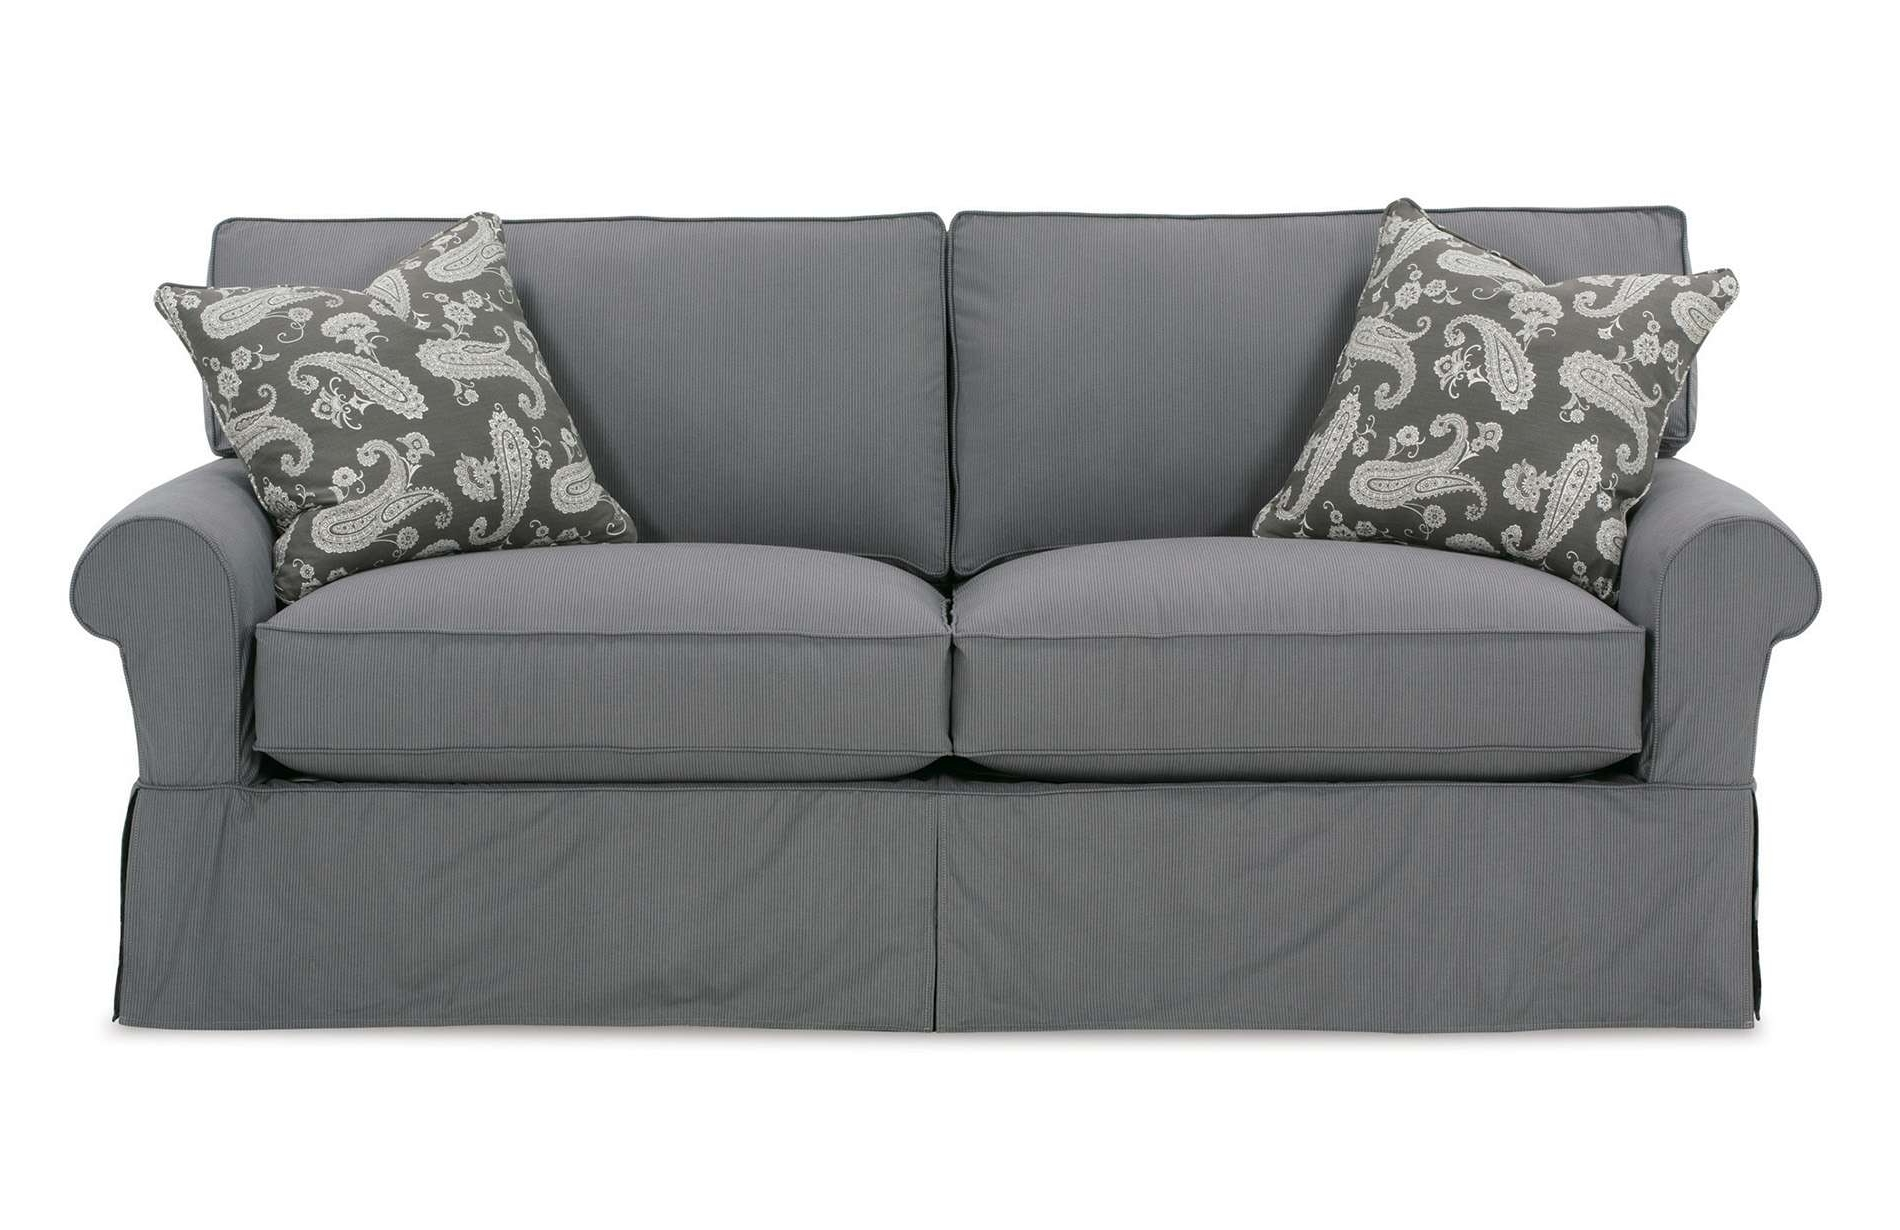 Current Good Washable Slipcovered Sofas 30 For Sofa Table Ideas With Within Washable Sofas (View 12 of 15)